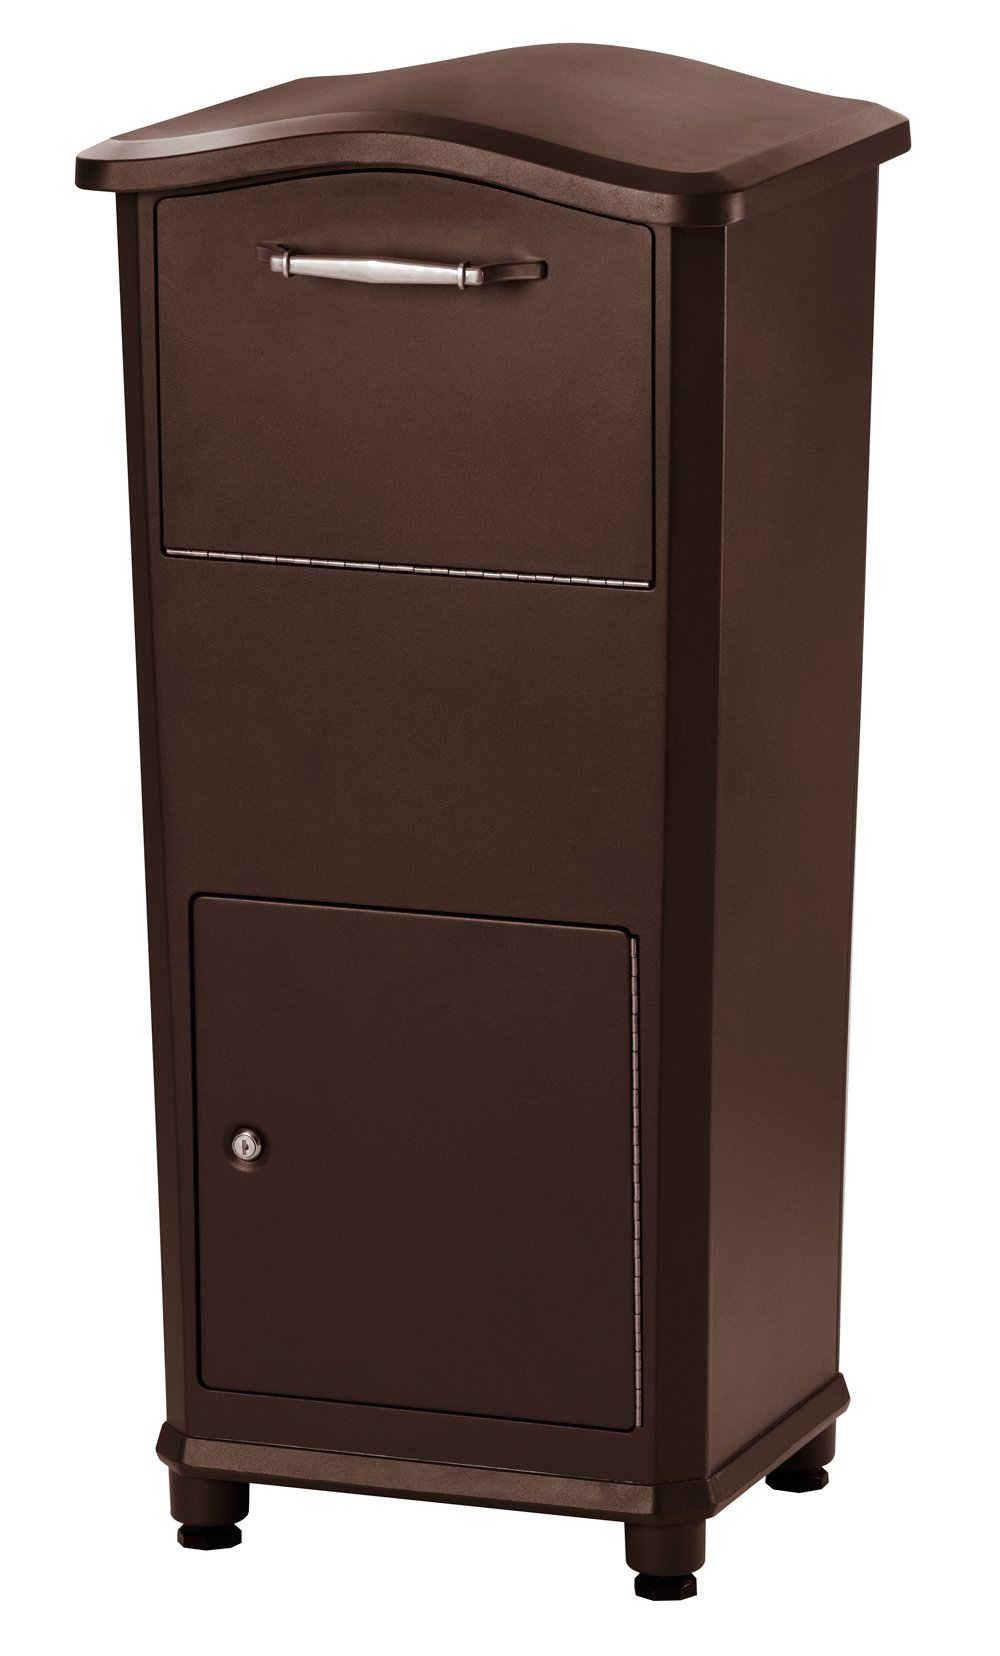 Architectural Mailboxes 6900RZ Elephantrunk Parcel Drop Box, Oil Rubbed Bronze by ARCHITECTURAL MAILBOXES